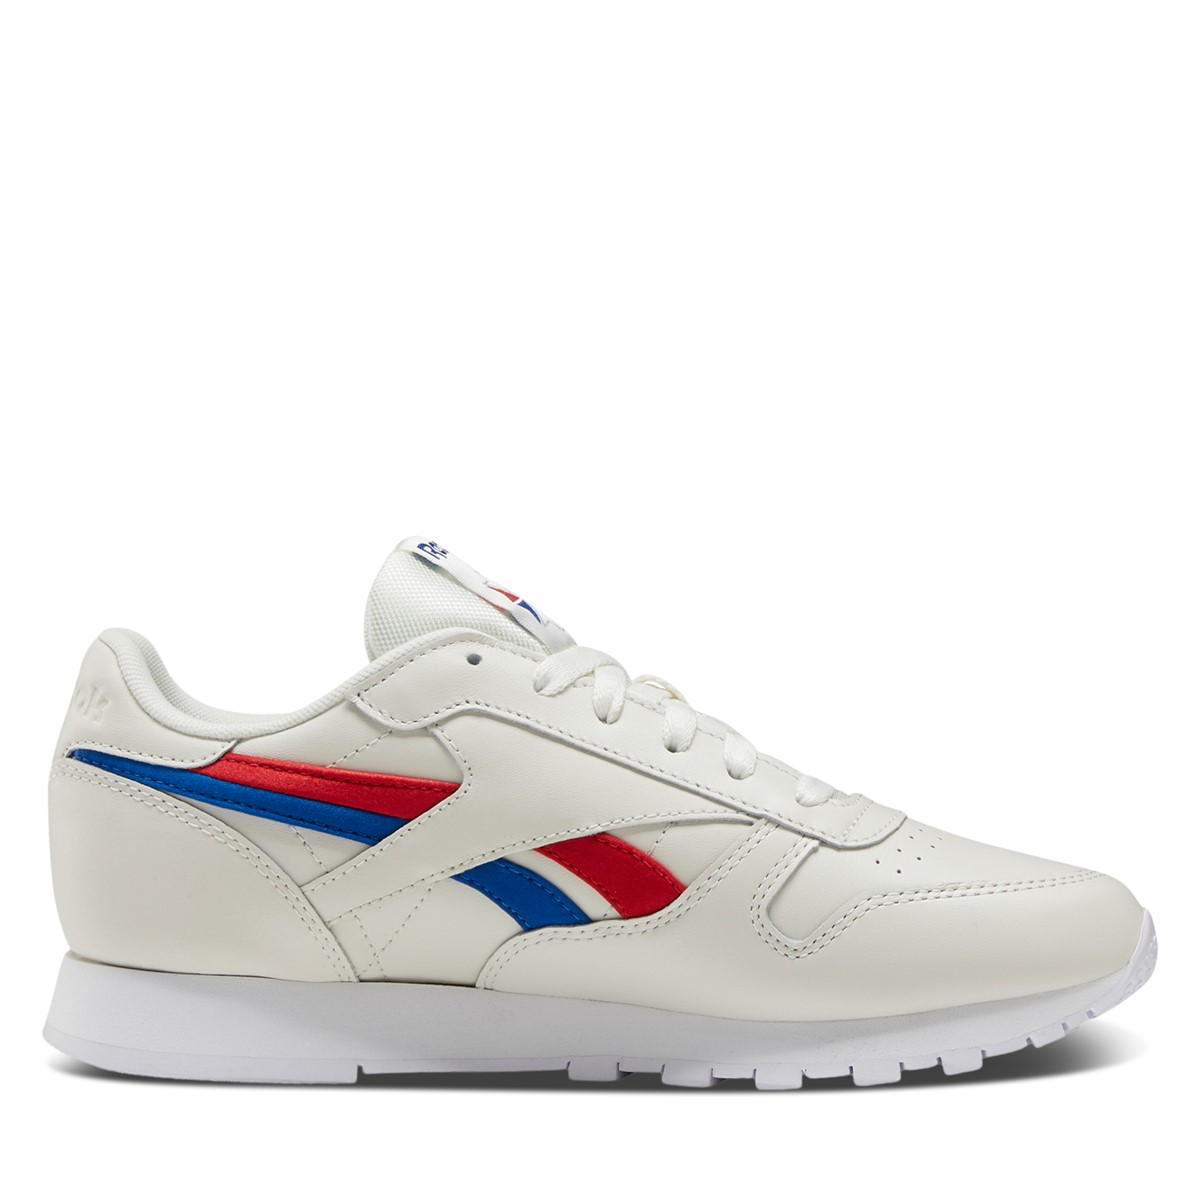 Women's Classic Leather Sneakers in Off-White/Blue/Red